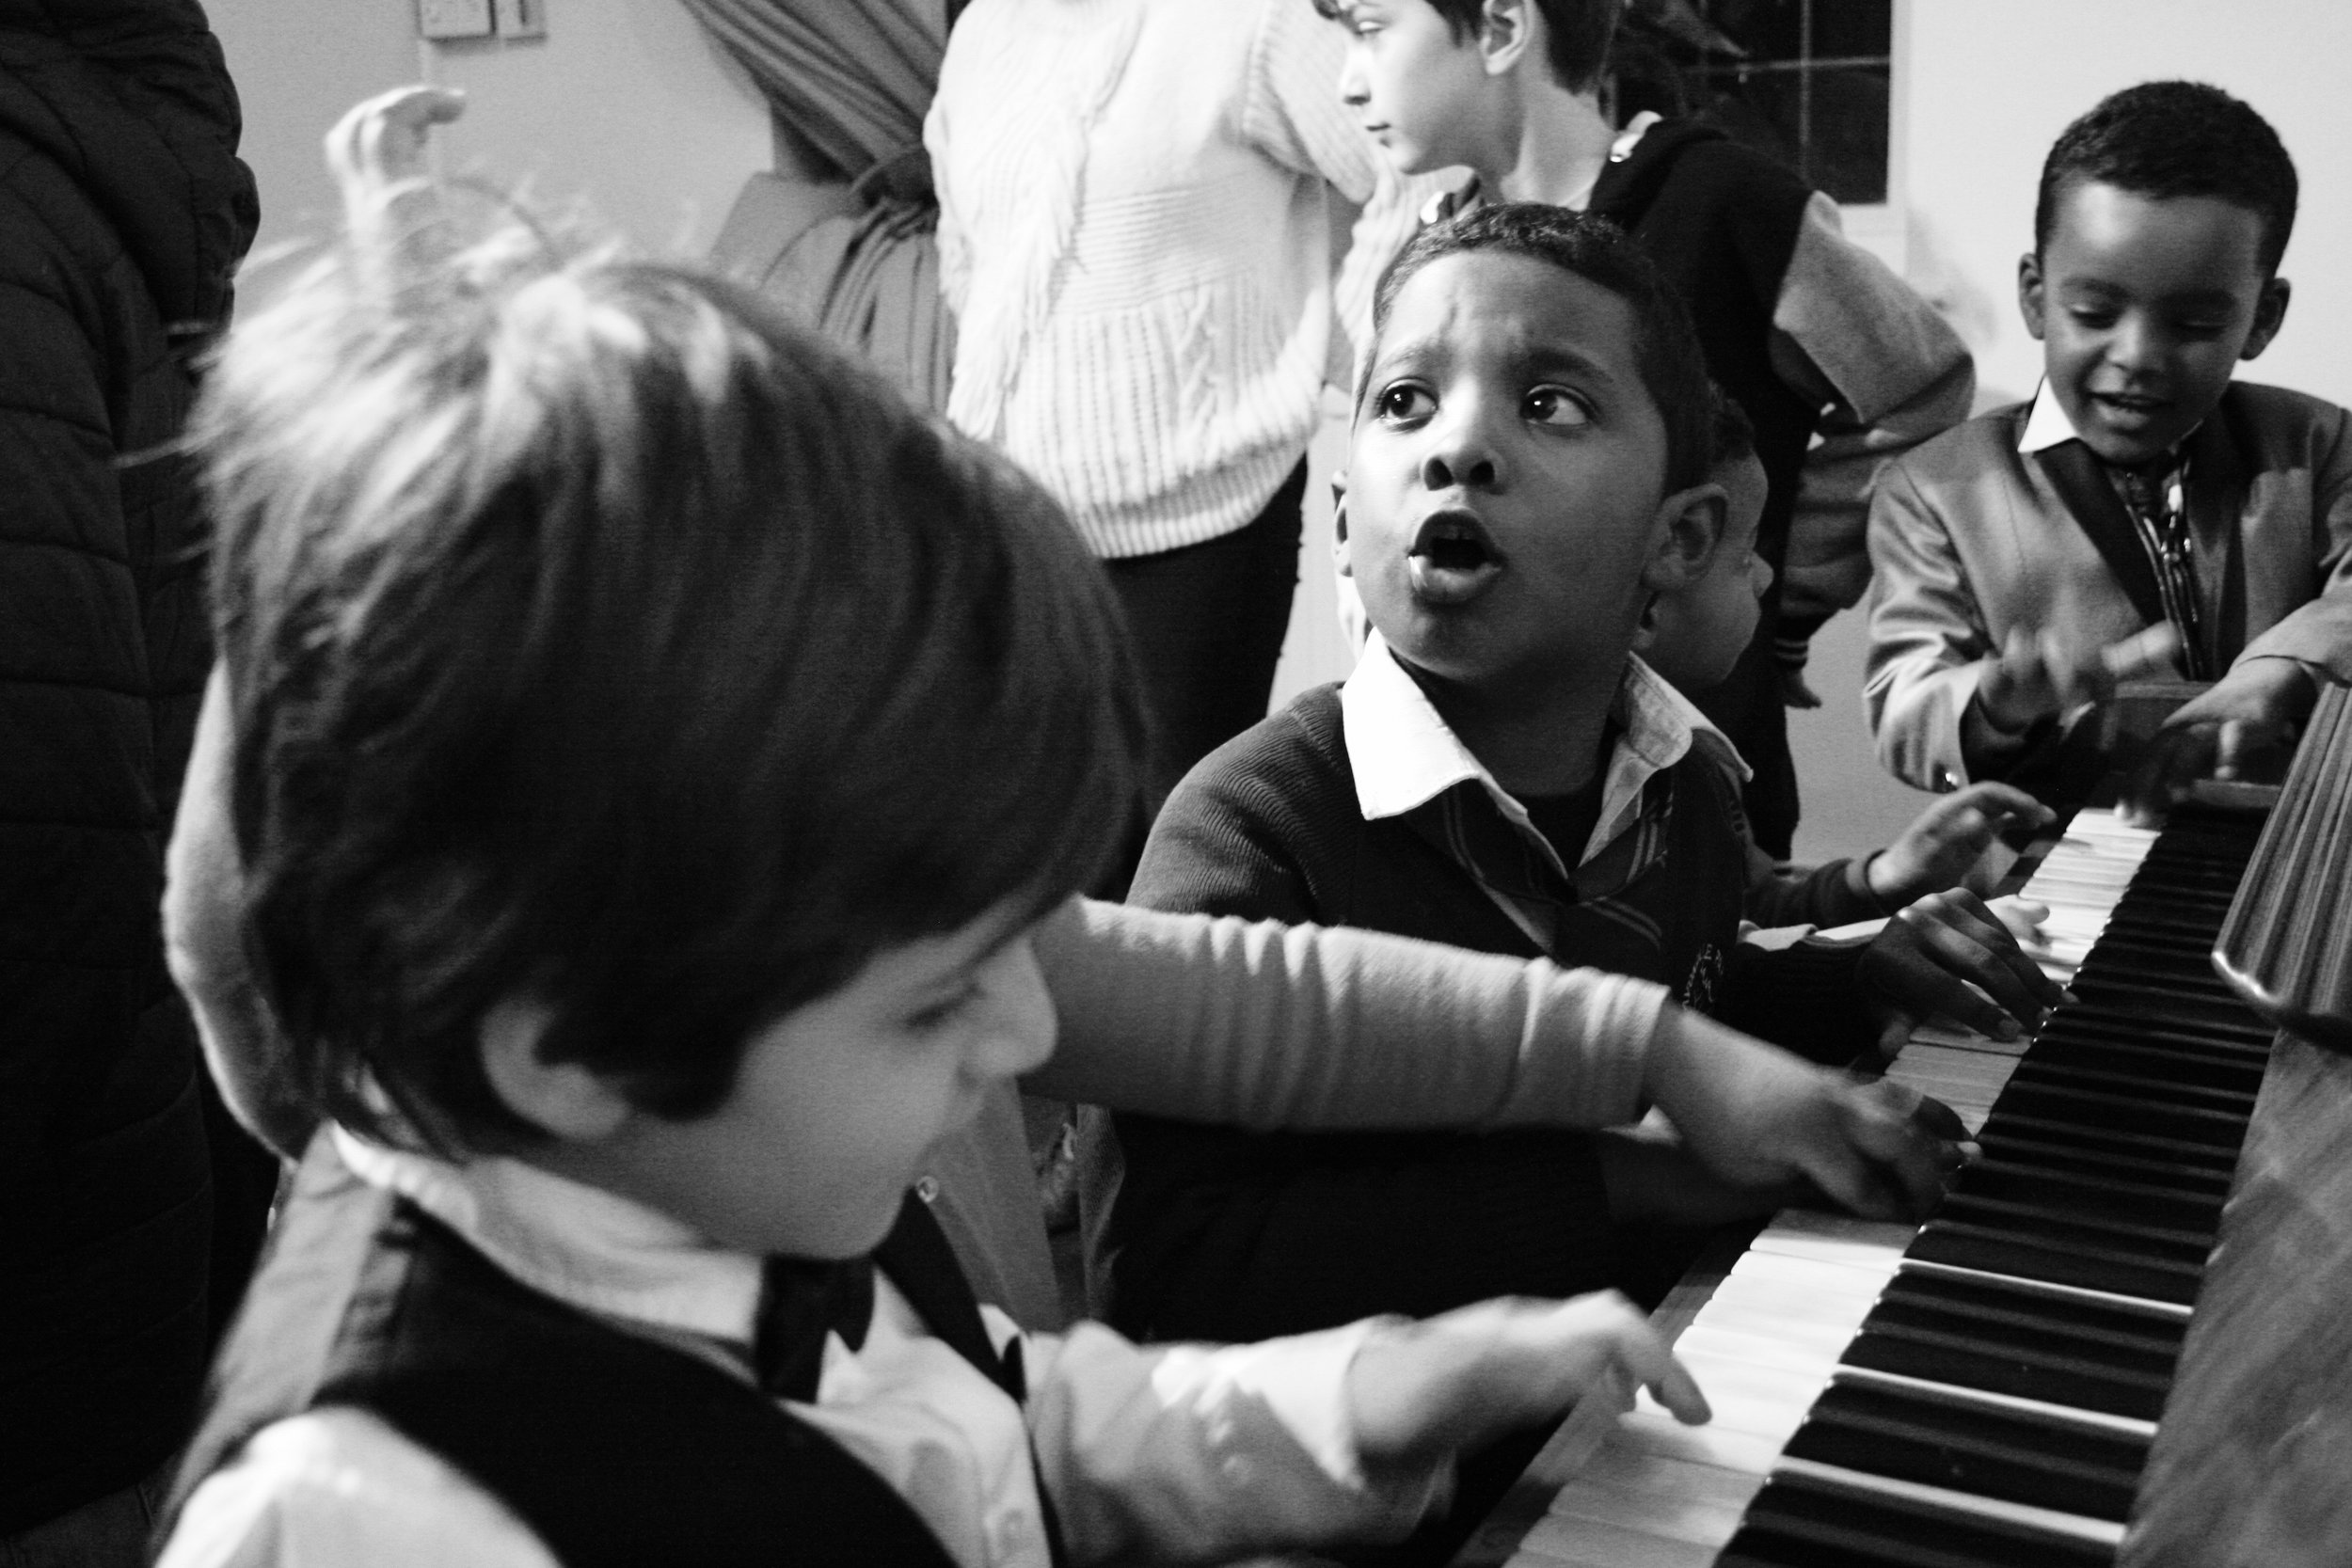 Kids at piano IMG_6656.jpg